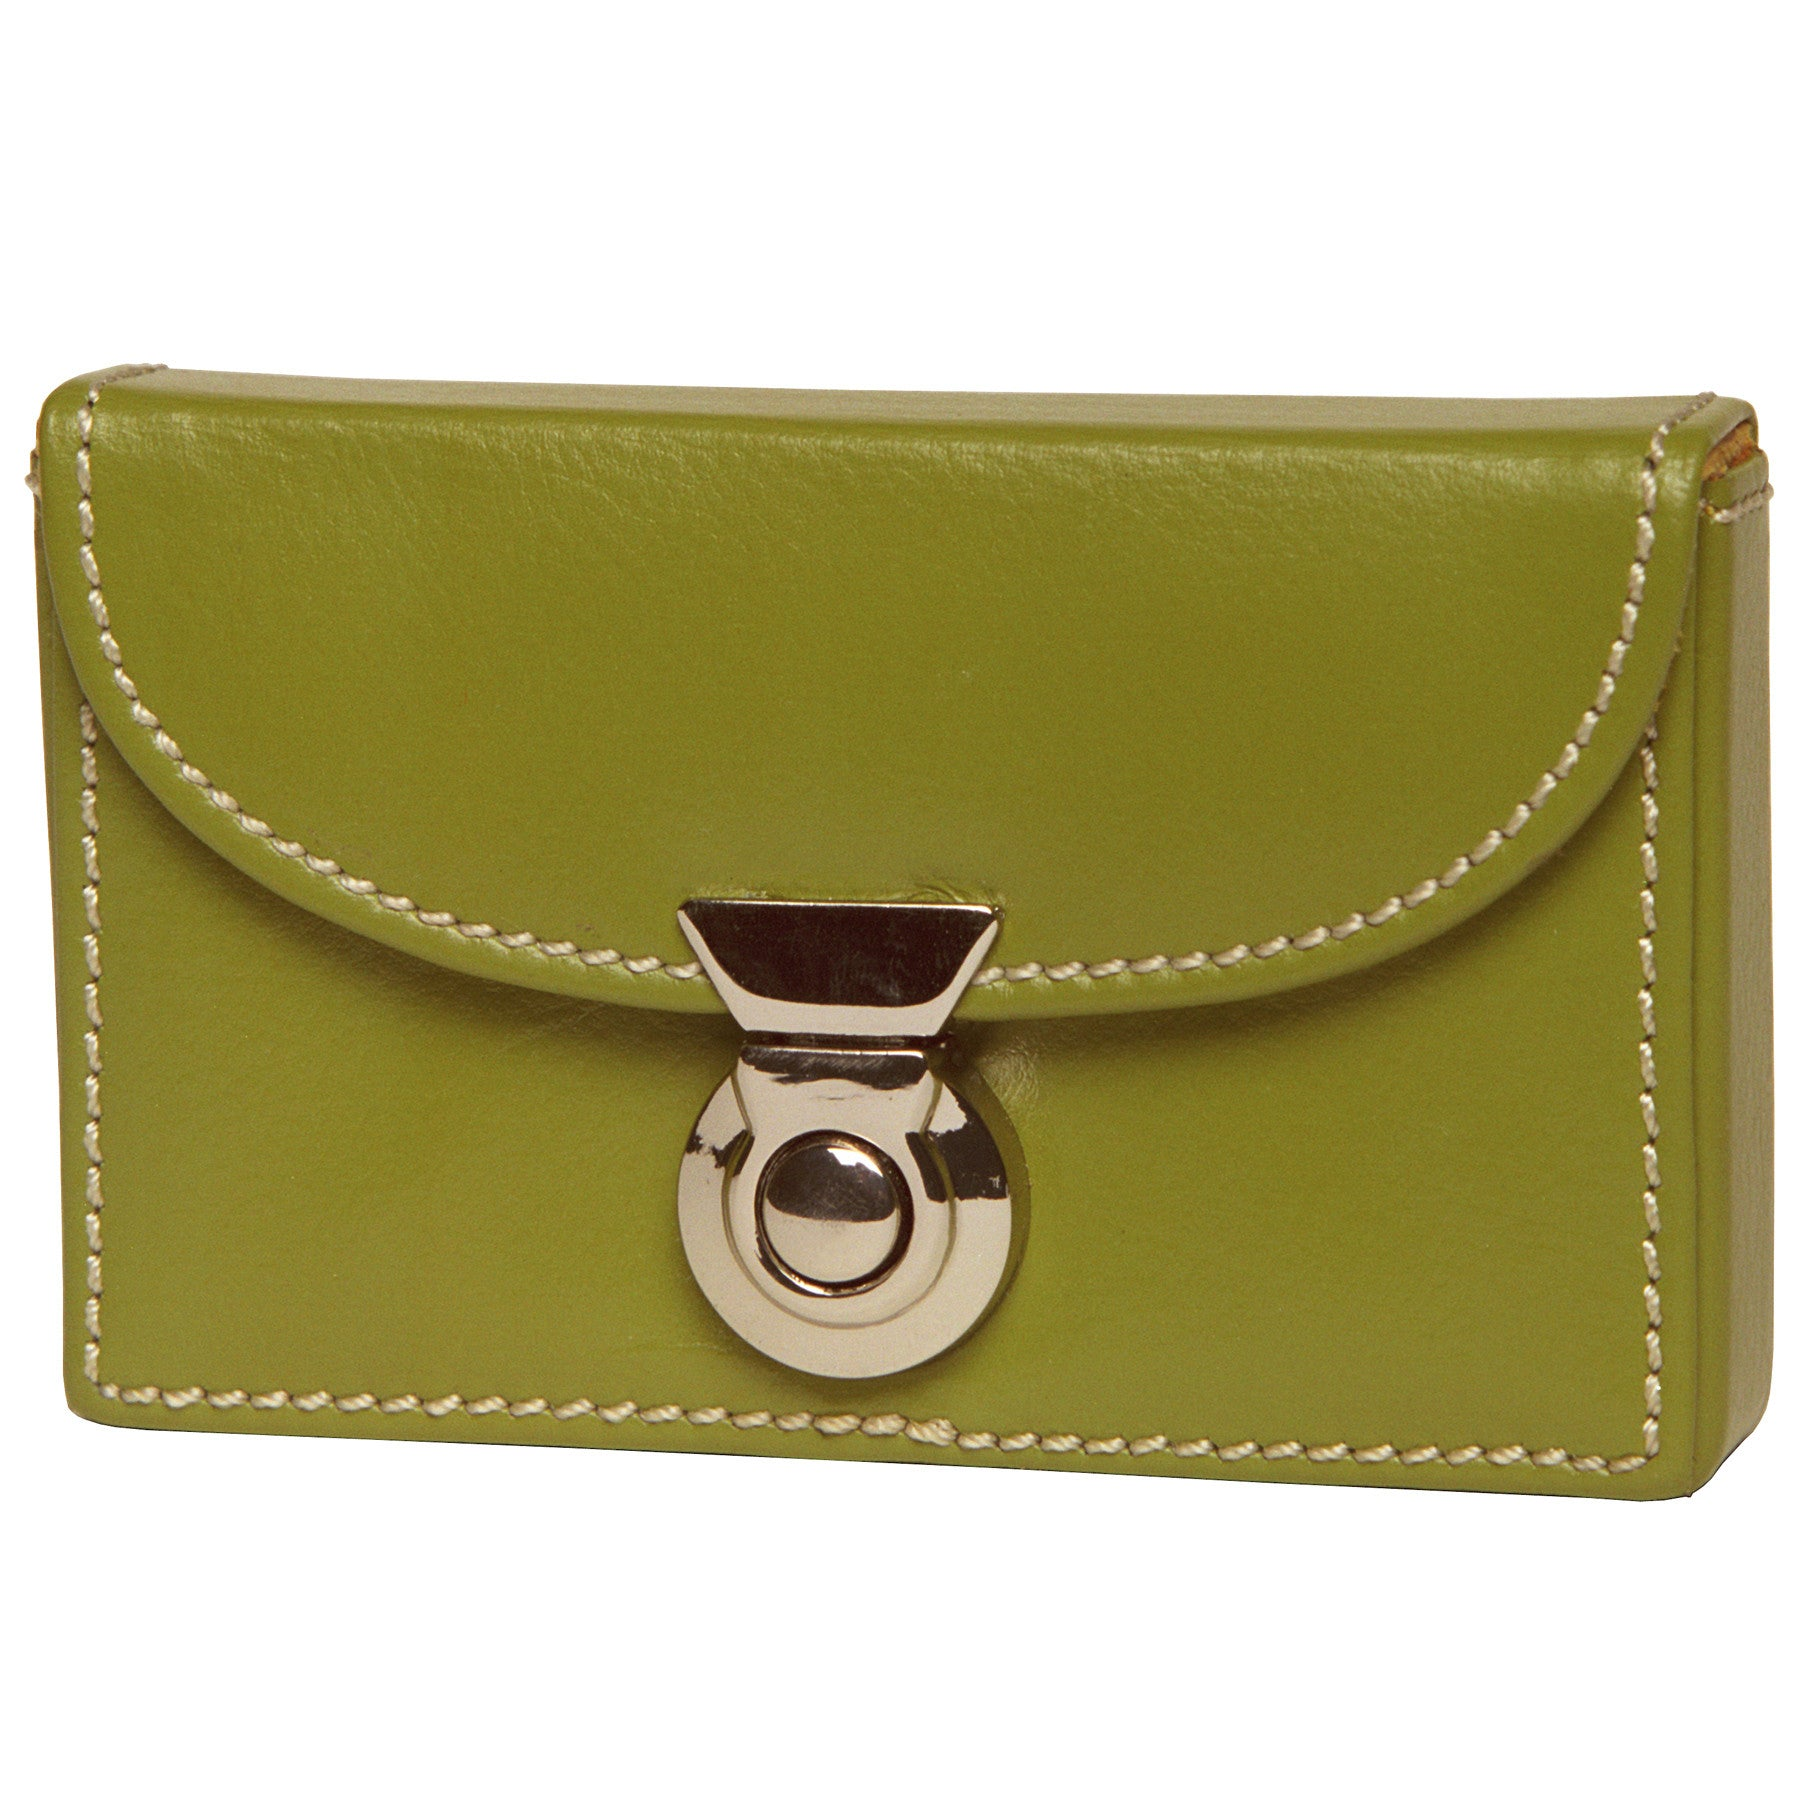 Alicia Klein leather card holder, olive green